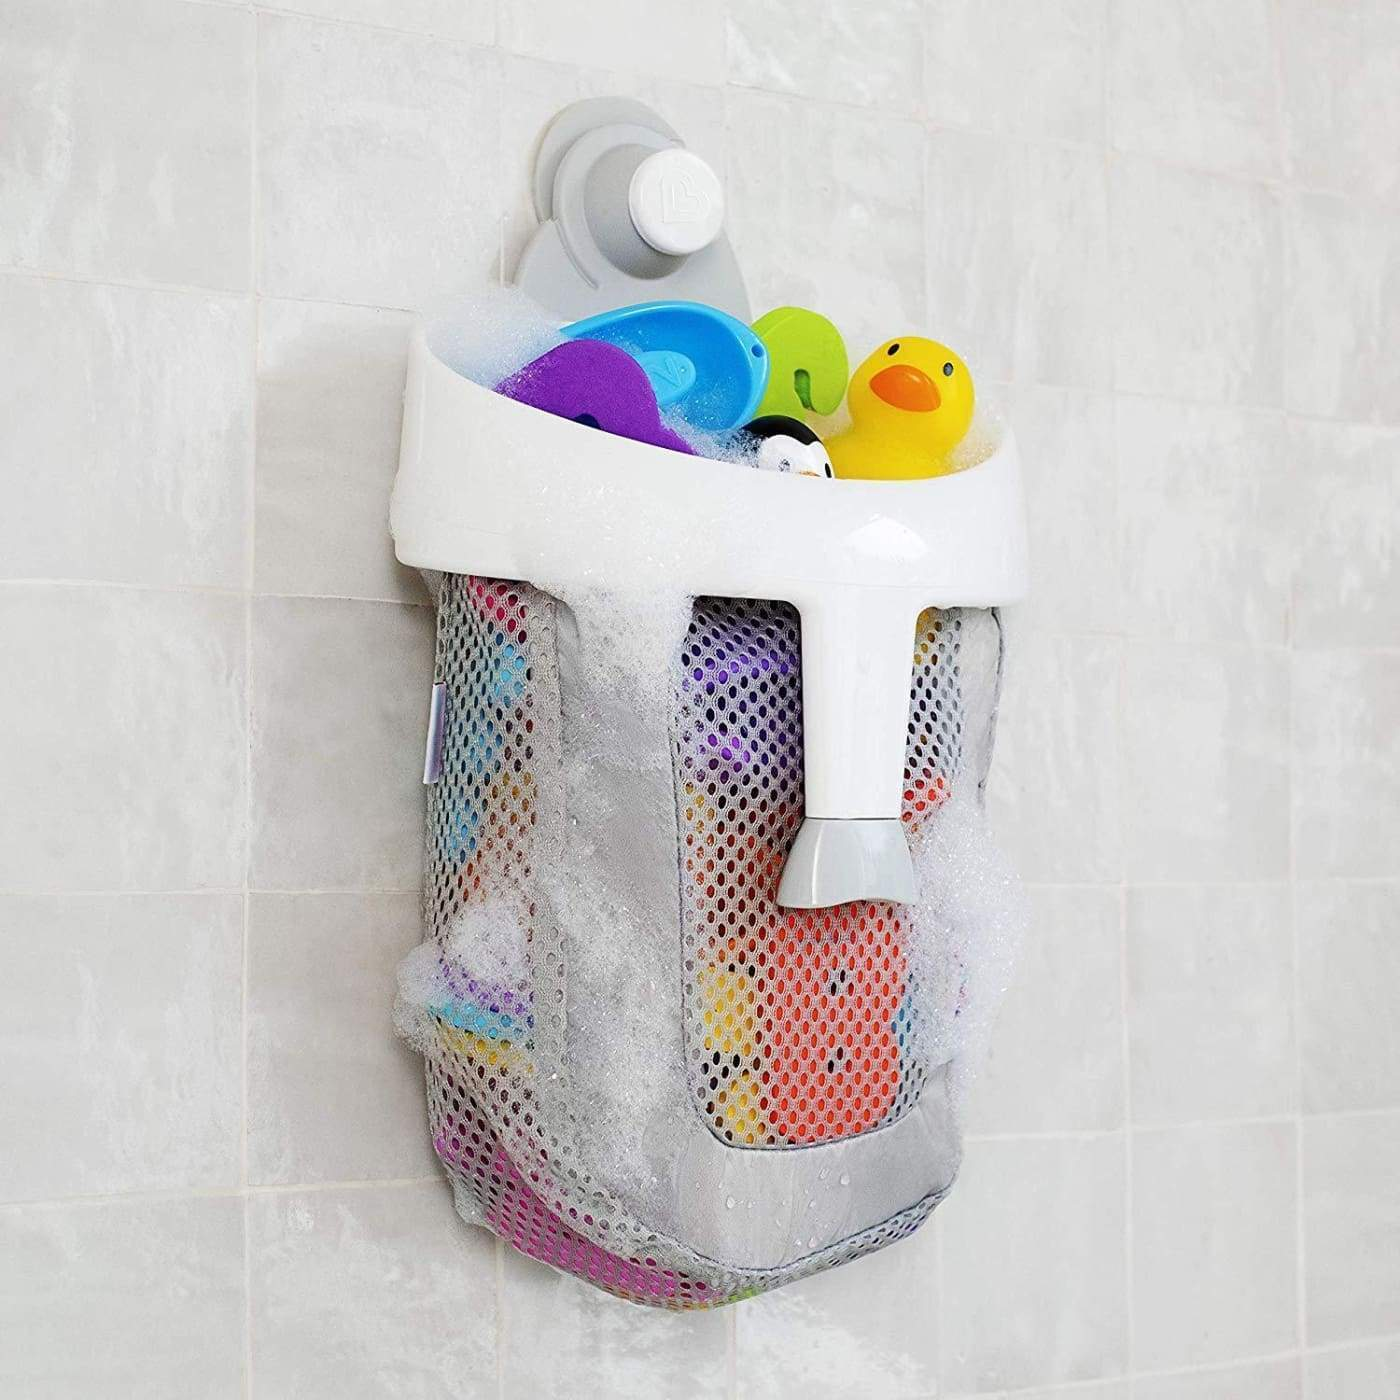 Munchkin Super Scoop Bath Organiser- Grey - BATHTIME & CHANGING - BATH TOYS/AIDS